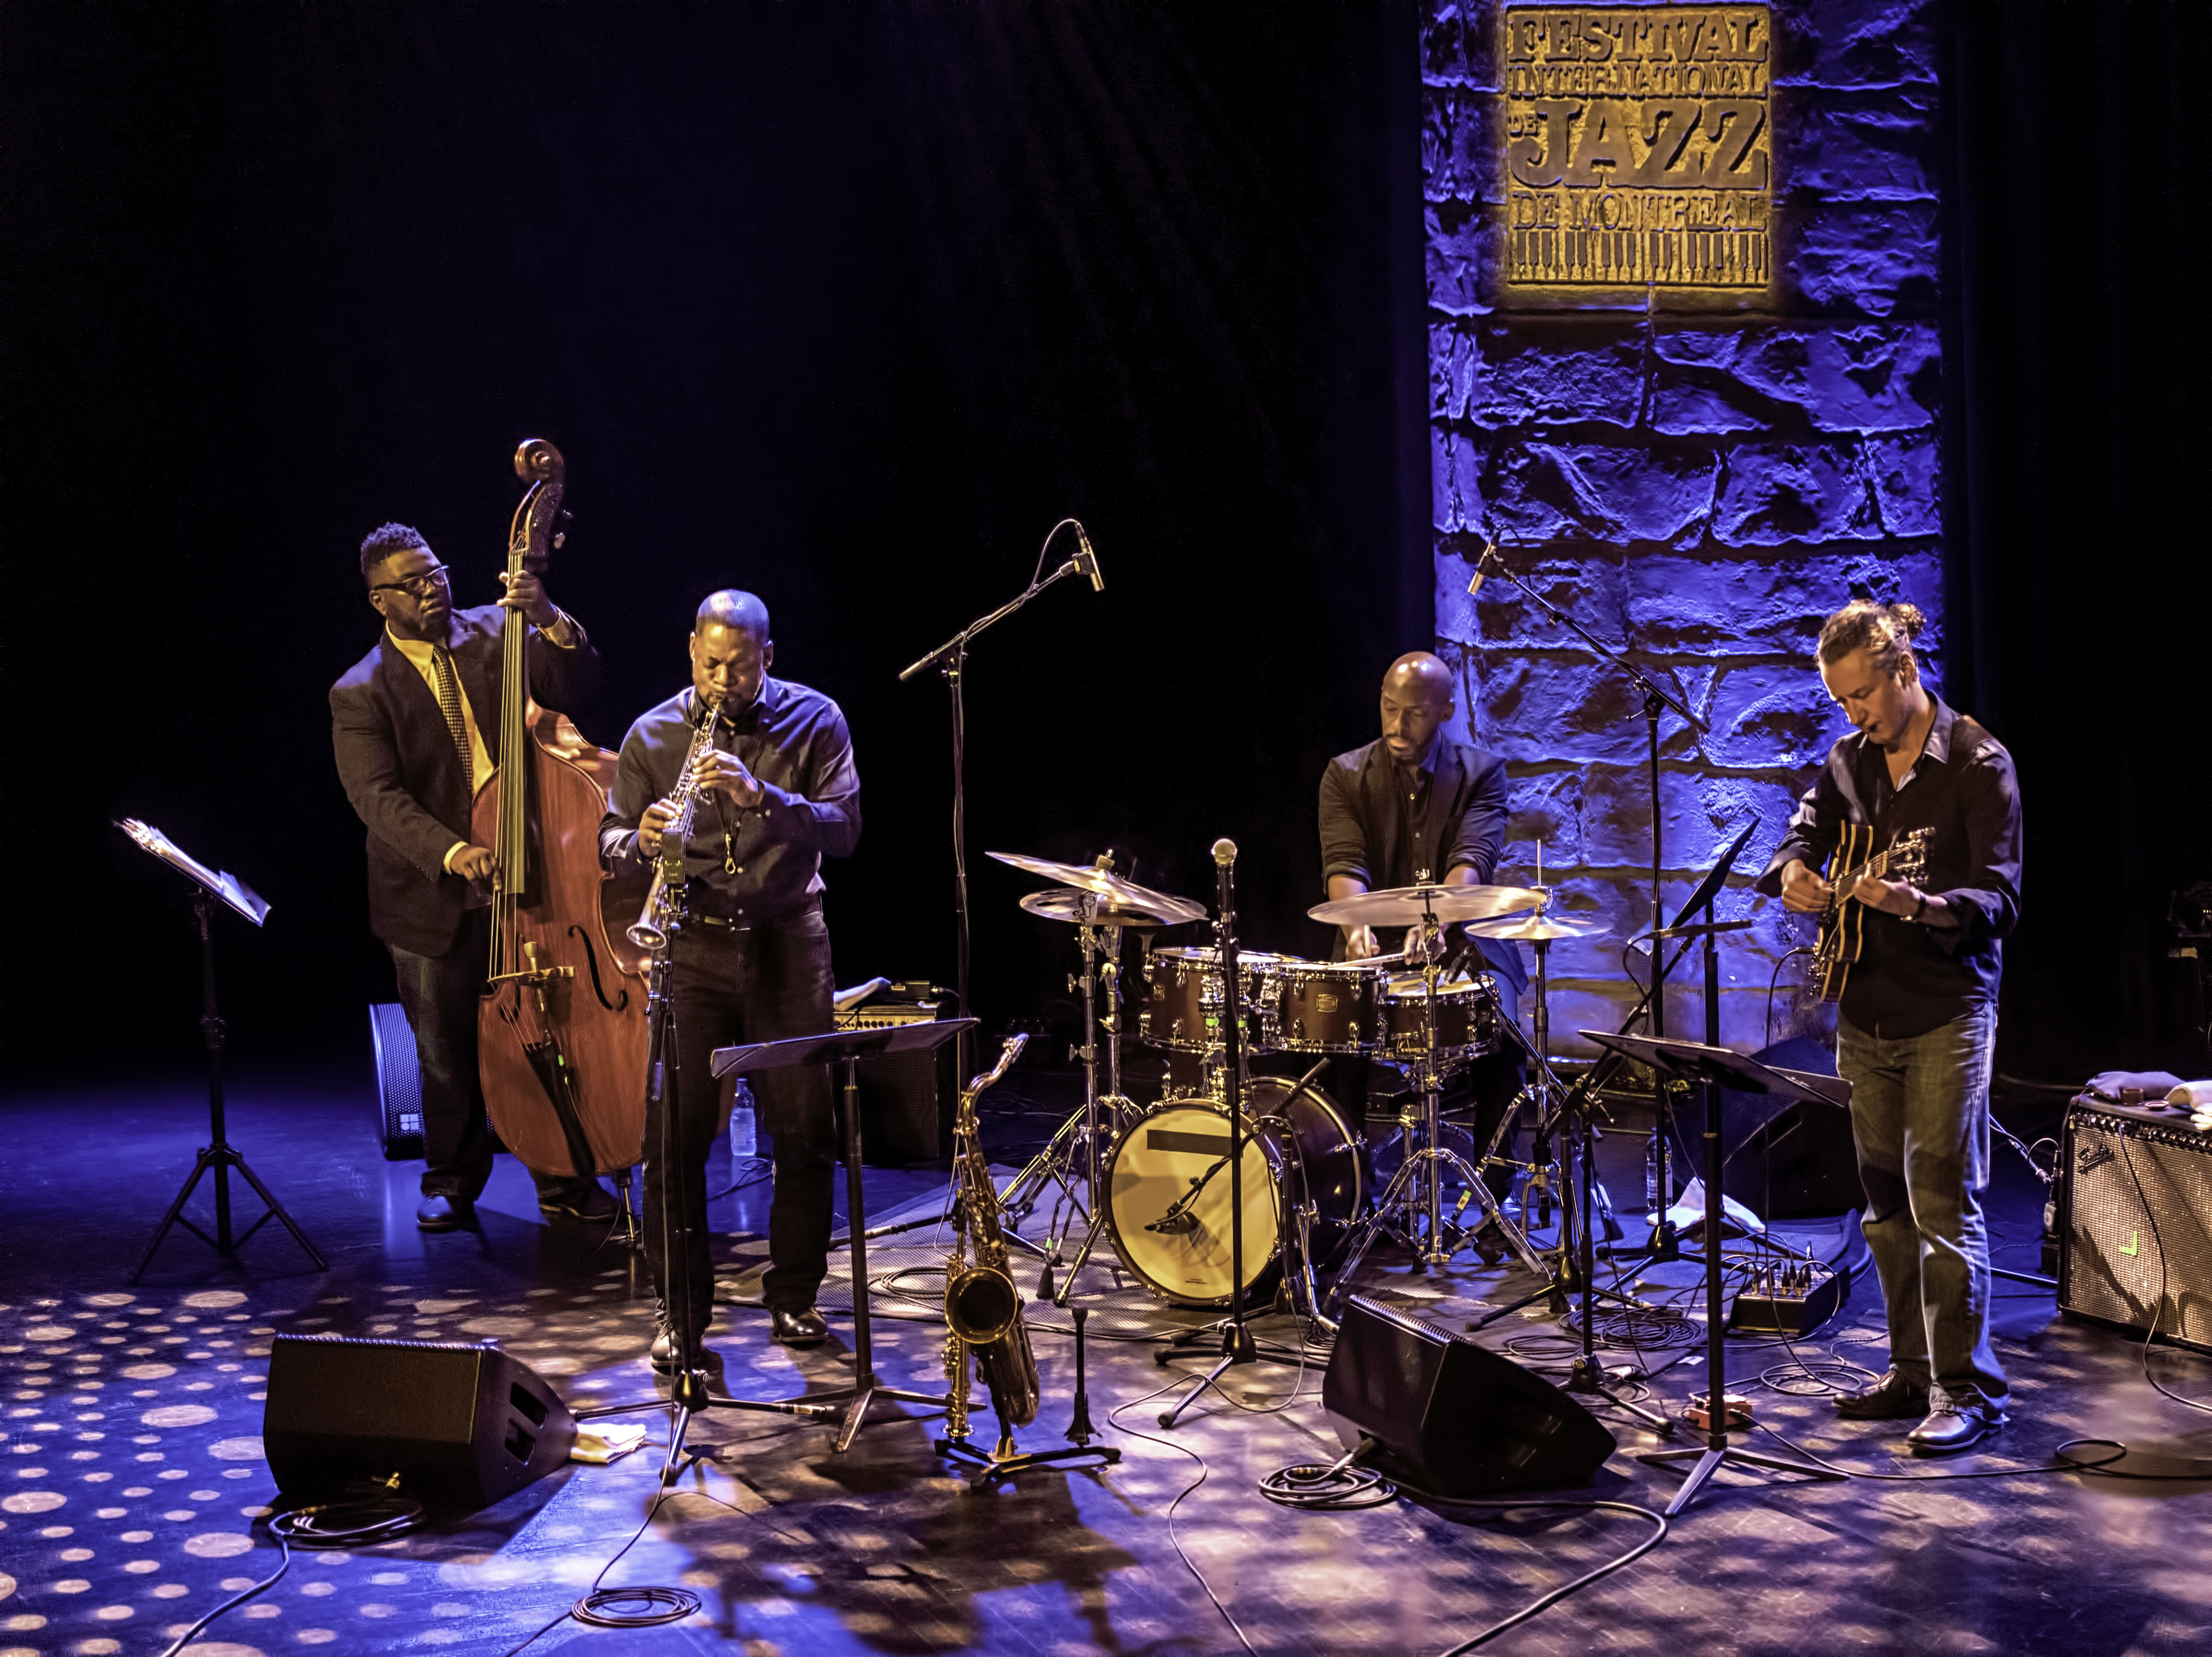 Dezron Douglas, Ravi Coltrane, E.J. Strickland and Adam Rogers with the Ravi Coltrane Quartet at The Montreal International Jazz Festival 2017